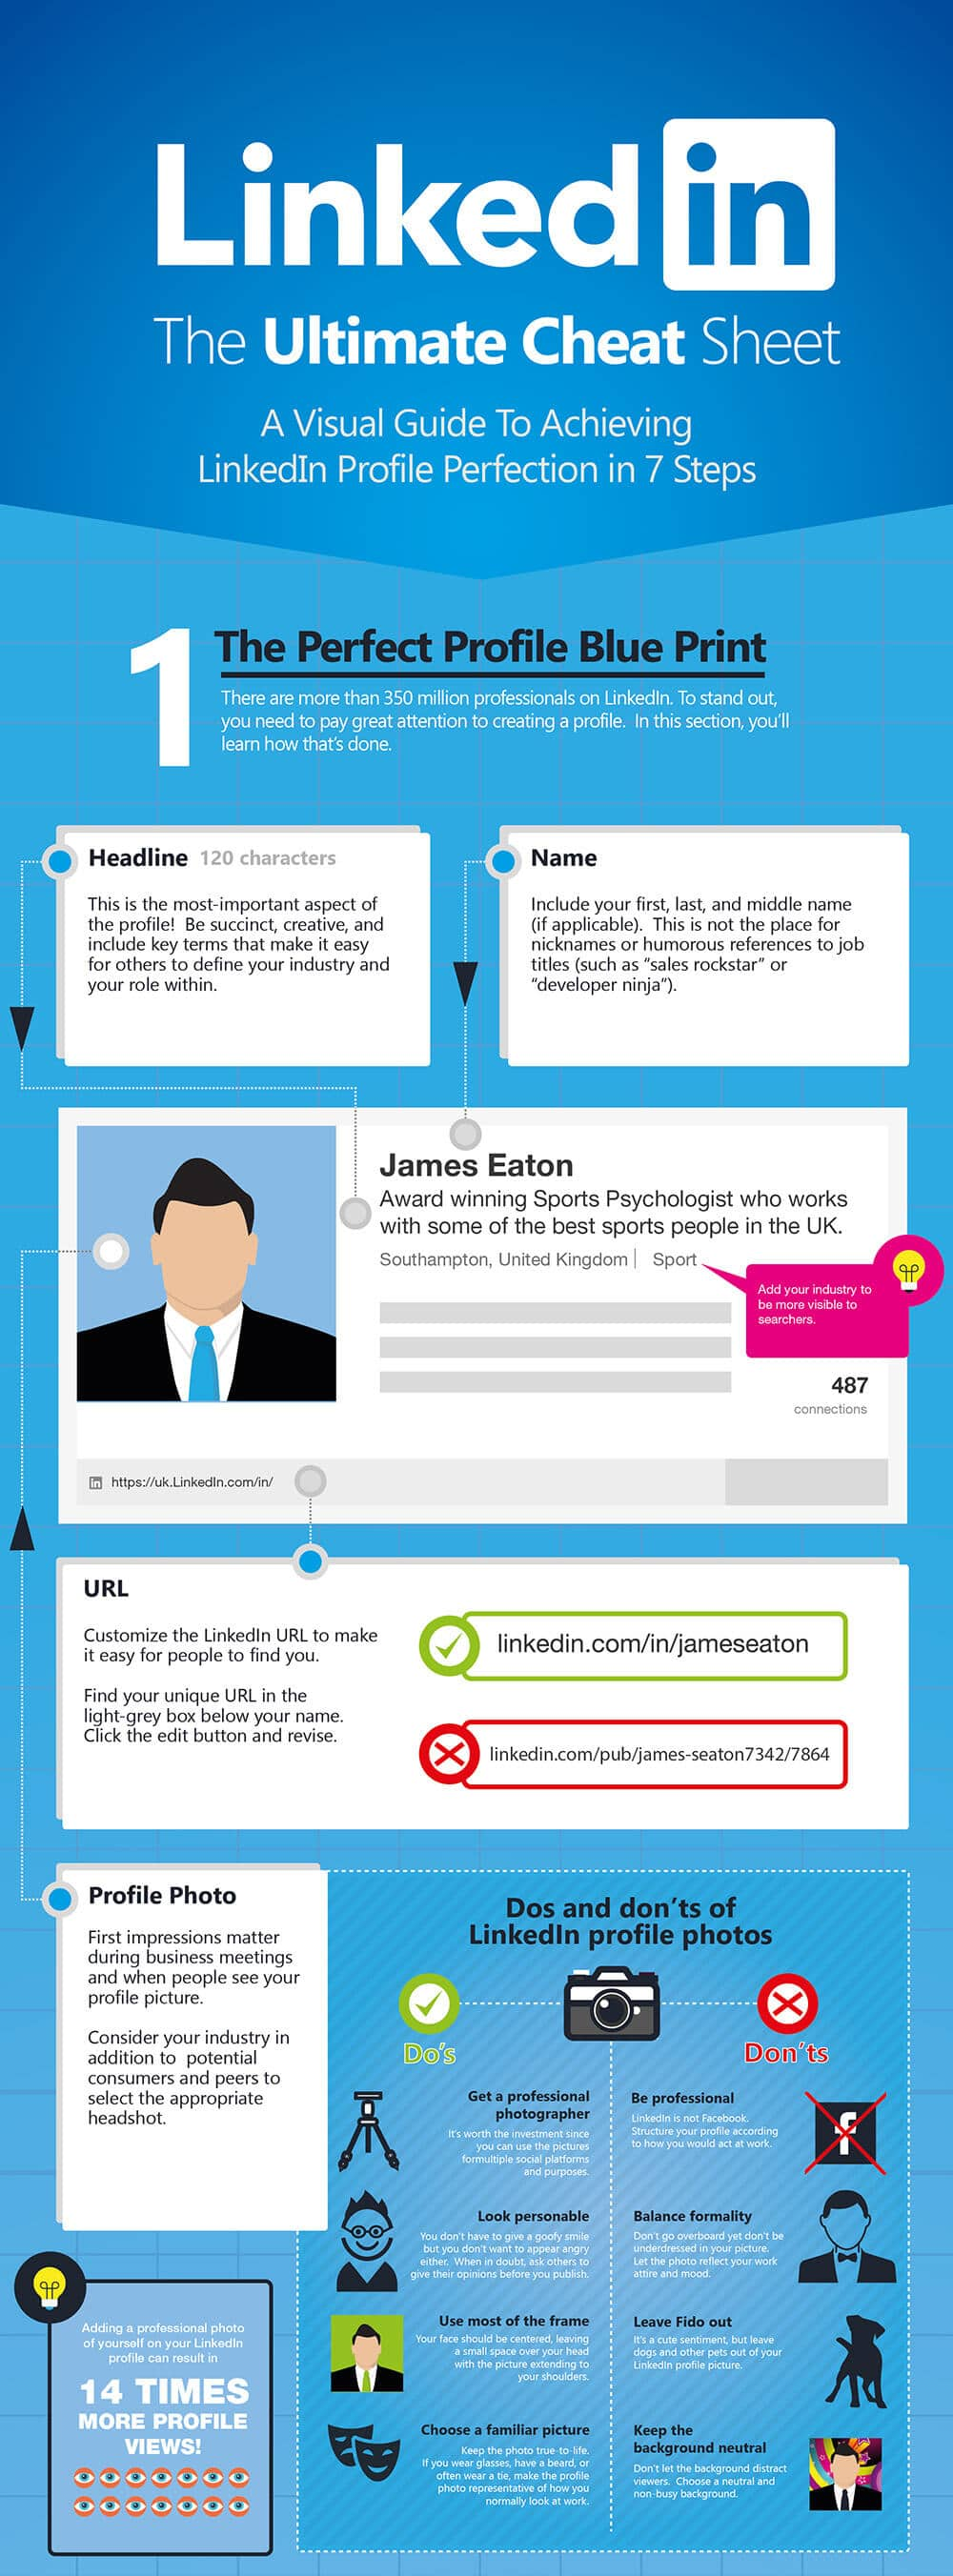 LinkedIn Ultimate Cheat Sheet: A Visual Guide To Achieving LinkedIn Profile Perfection In 7 Steps Part 1